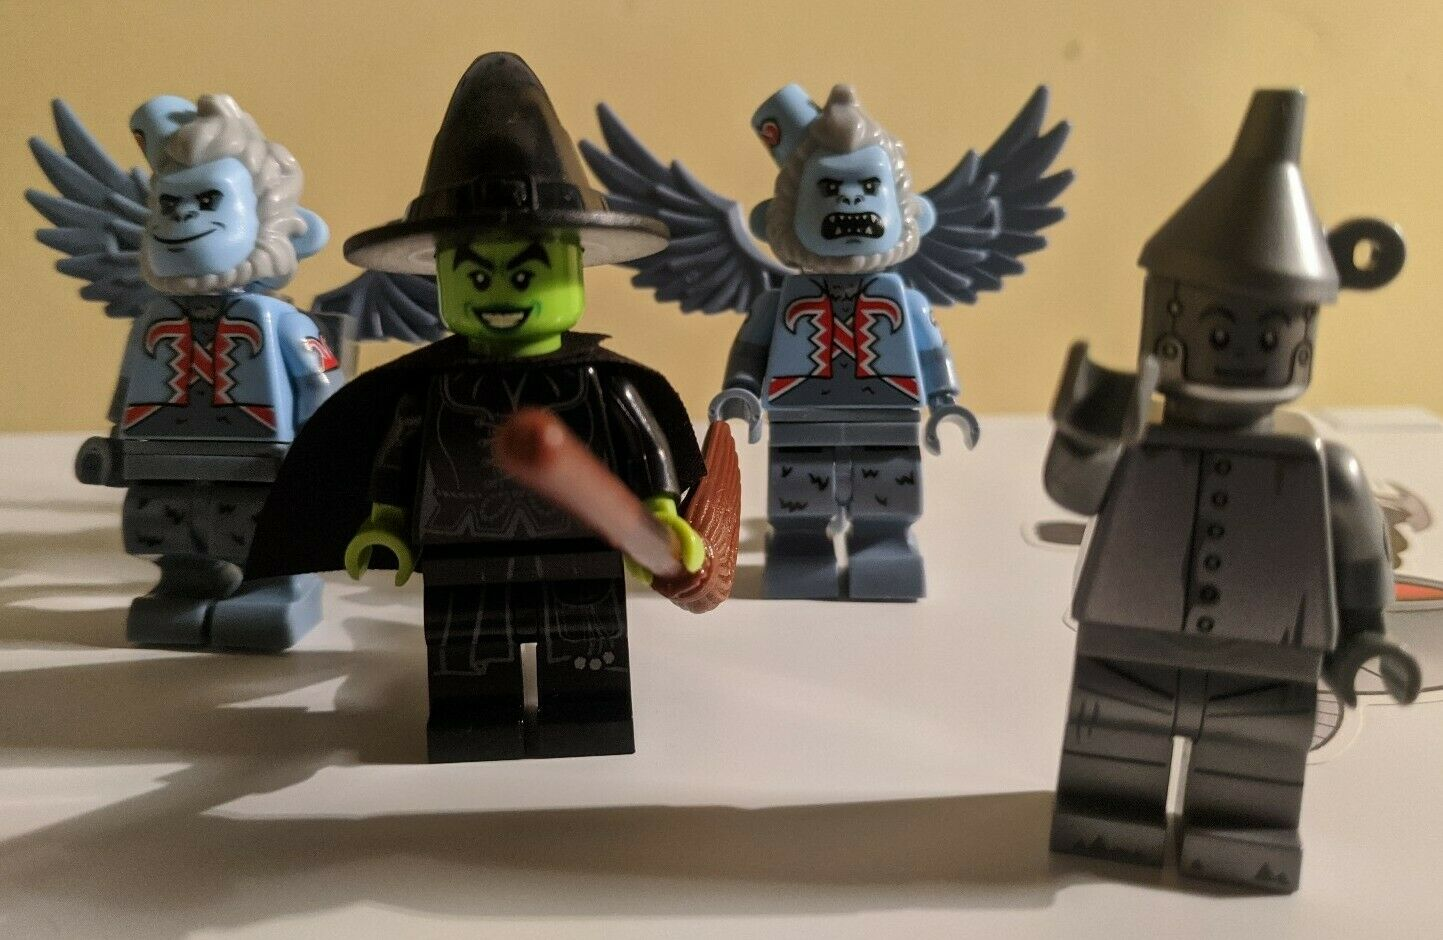 LEGO Wizard Of Oz Minifigure Lot of 4 (70917)